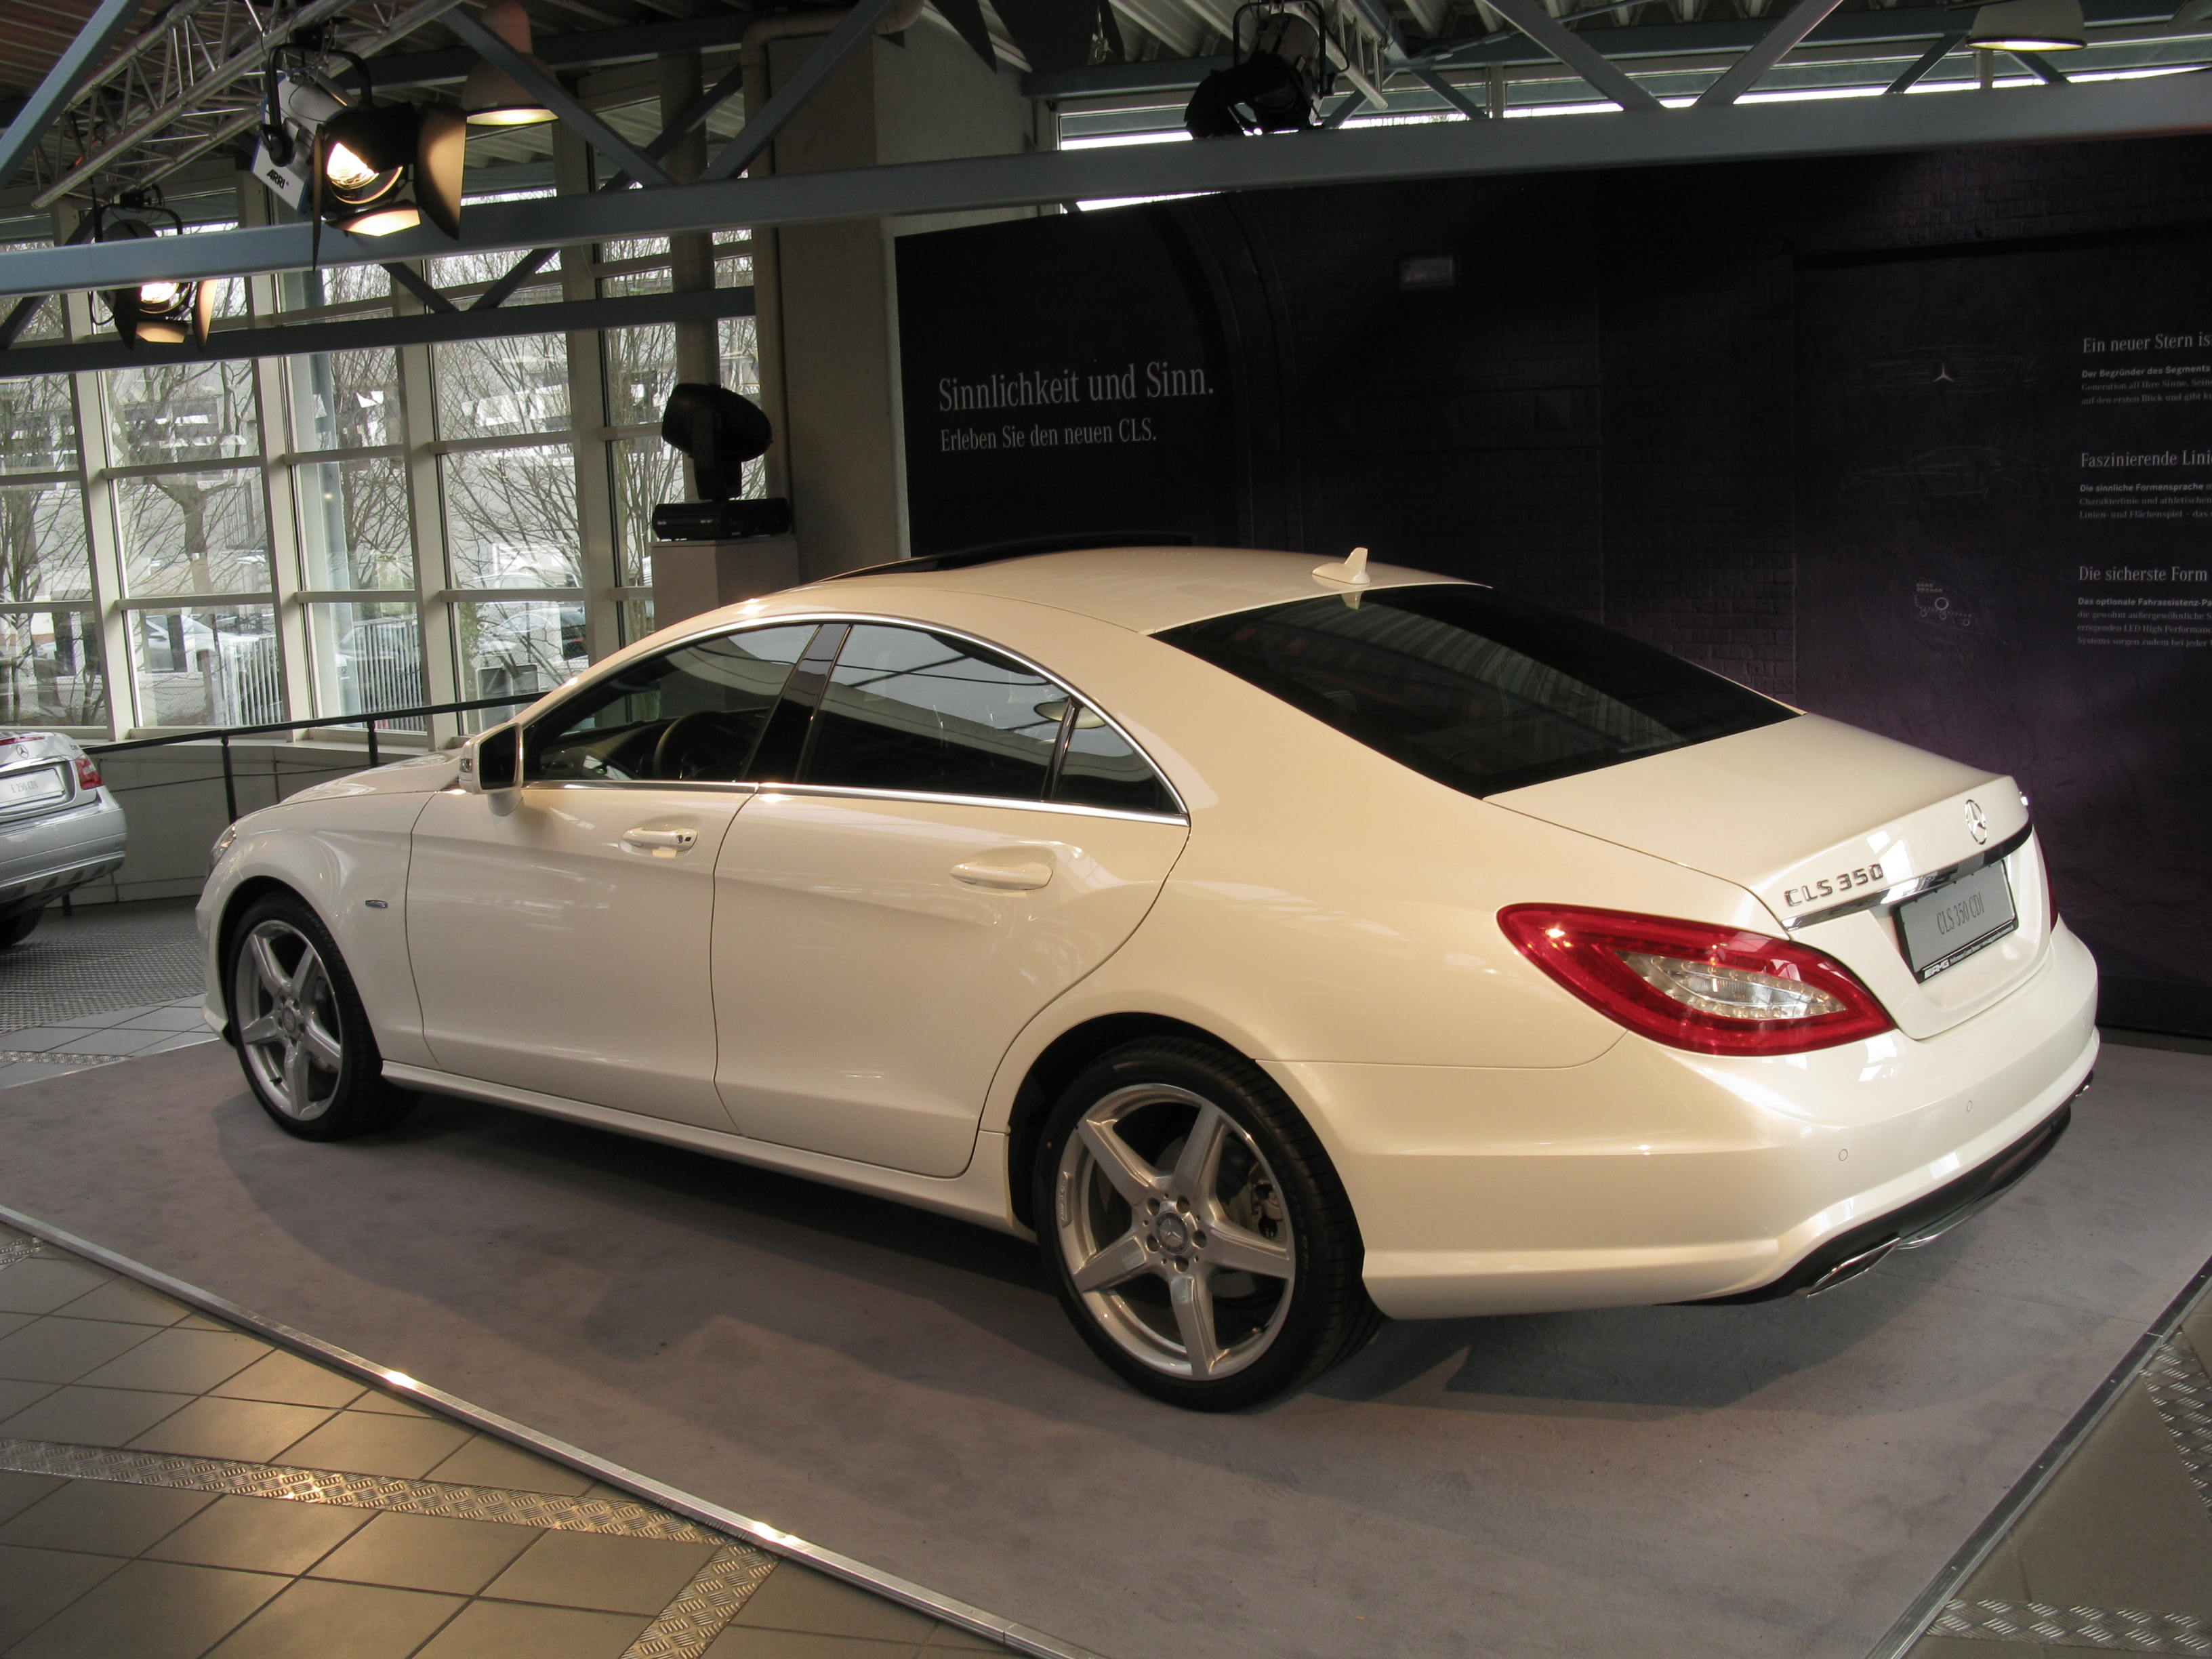 Verwonderend File:Mercedes-Benz CLS 350 CDi (5460127958).jpg - Wikimedia Commons XY-91